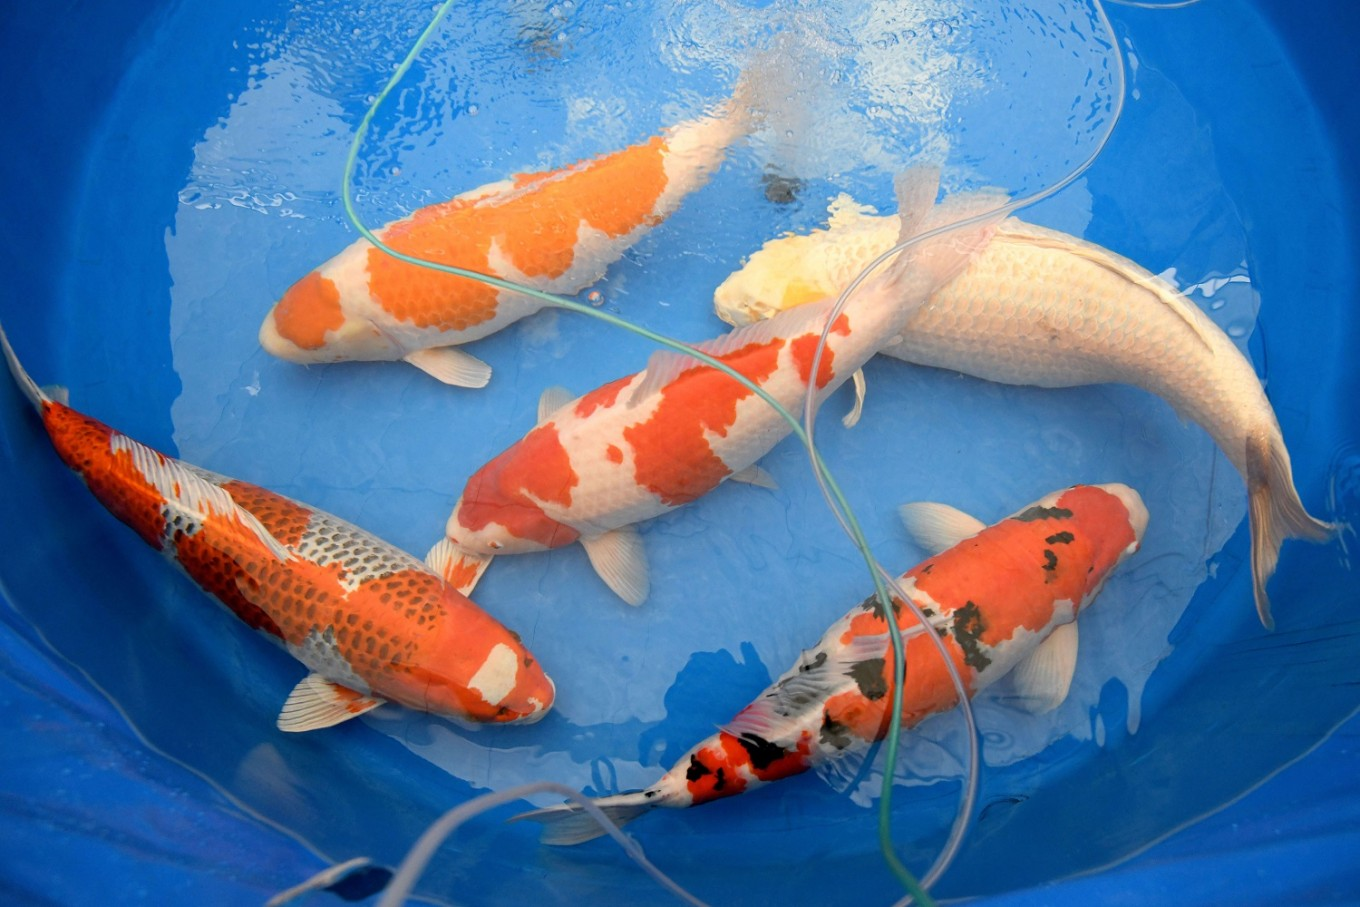 Koi Story Priceless Japanese Fish Make A Splash